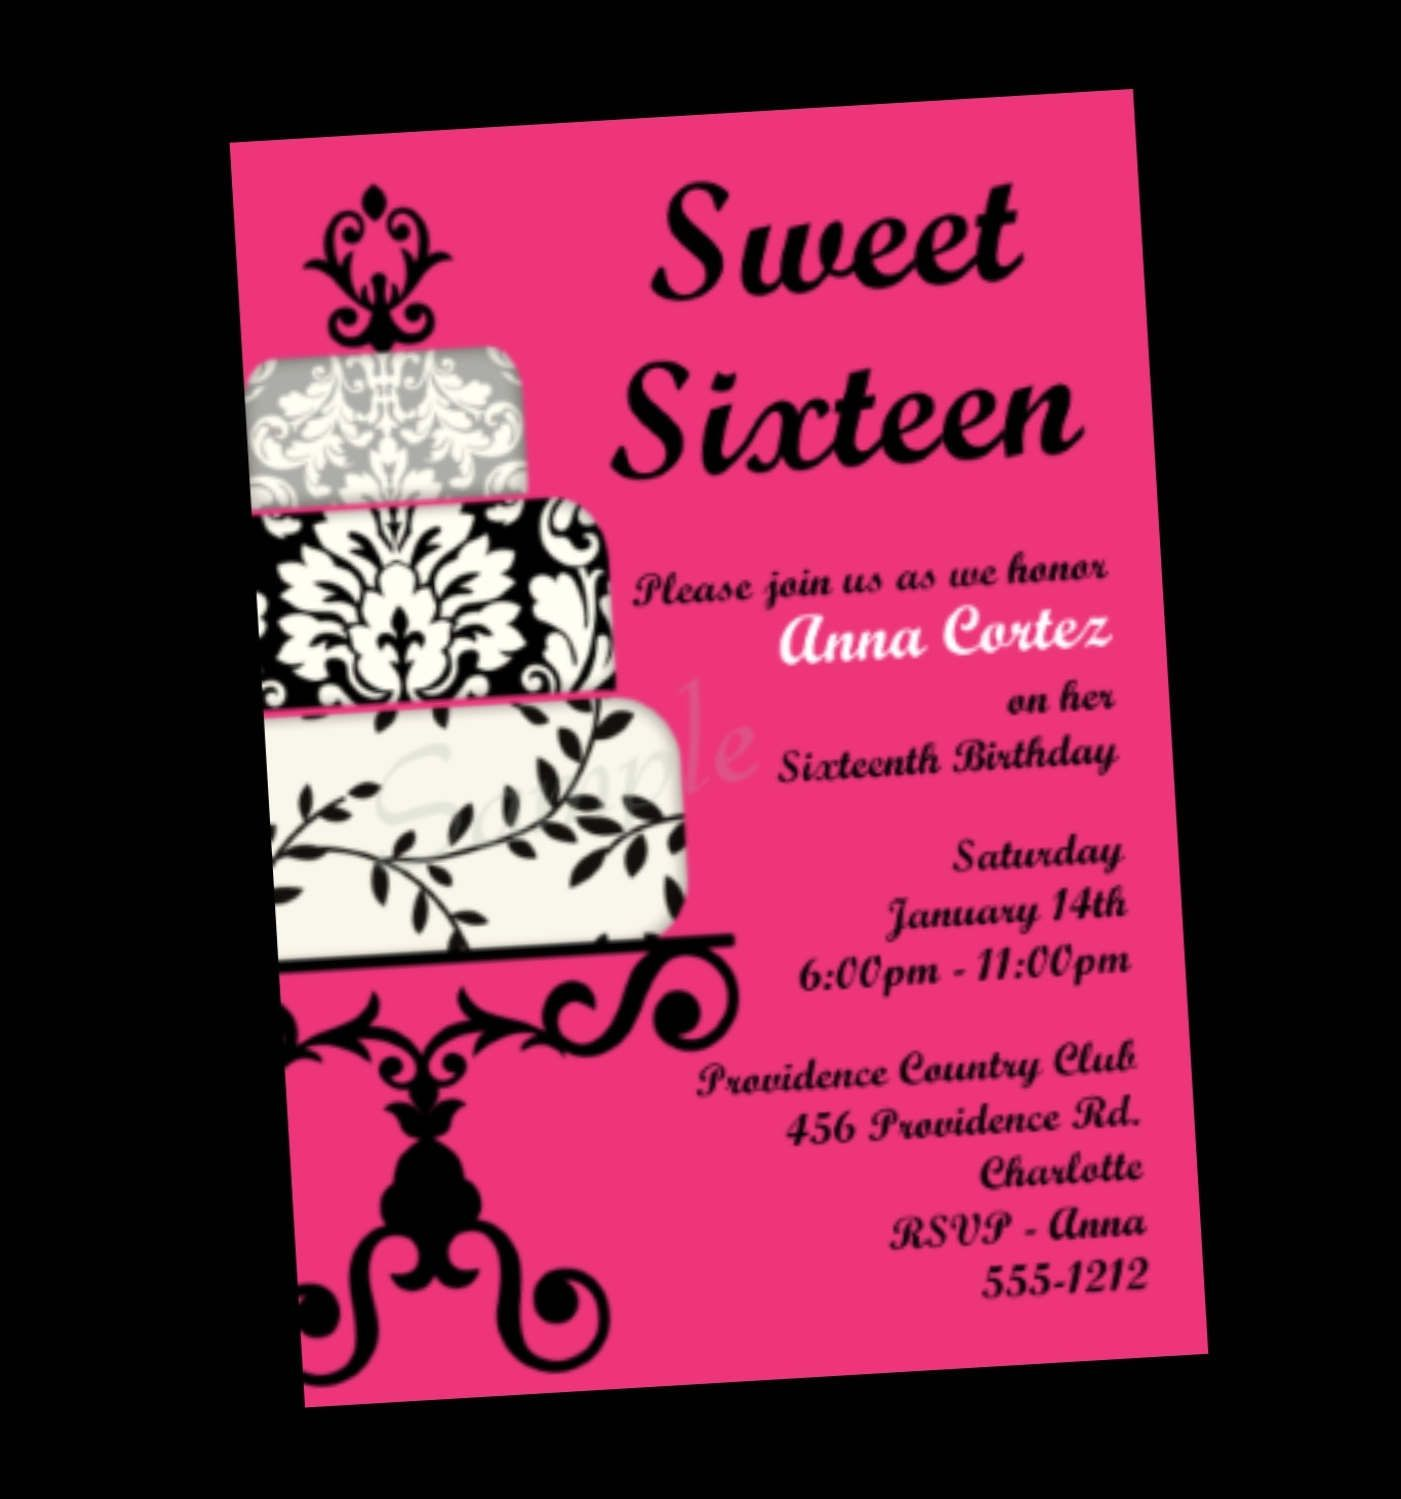 Invitations For Sweet Birthday Sweet Birthday Invitations - Sweet 16 party invitation templates